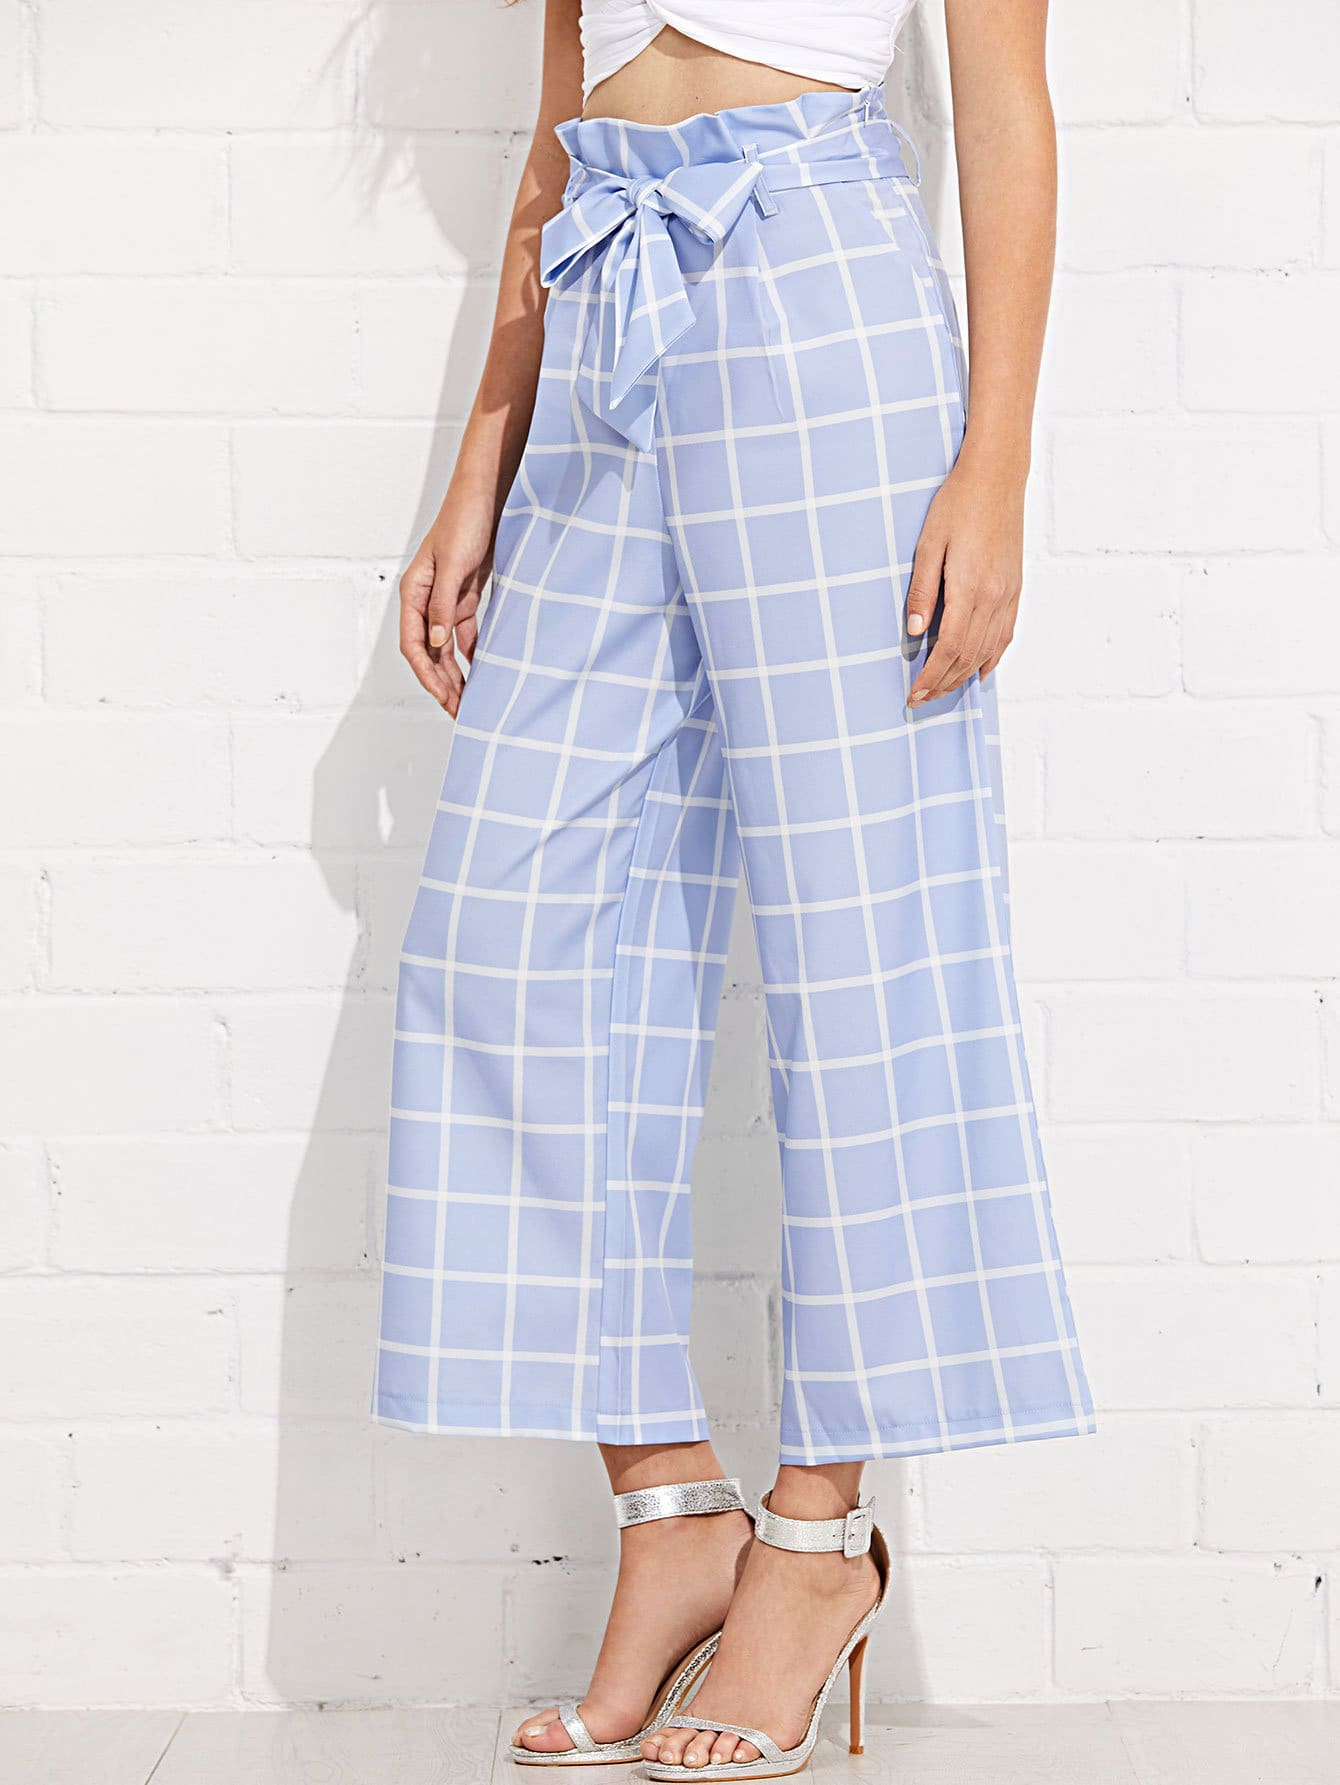 Self Belted Grid Palazzo Pants grid carrot pants